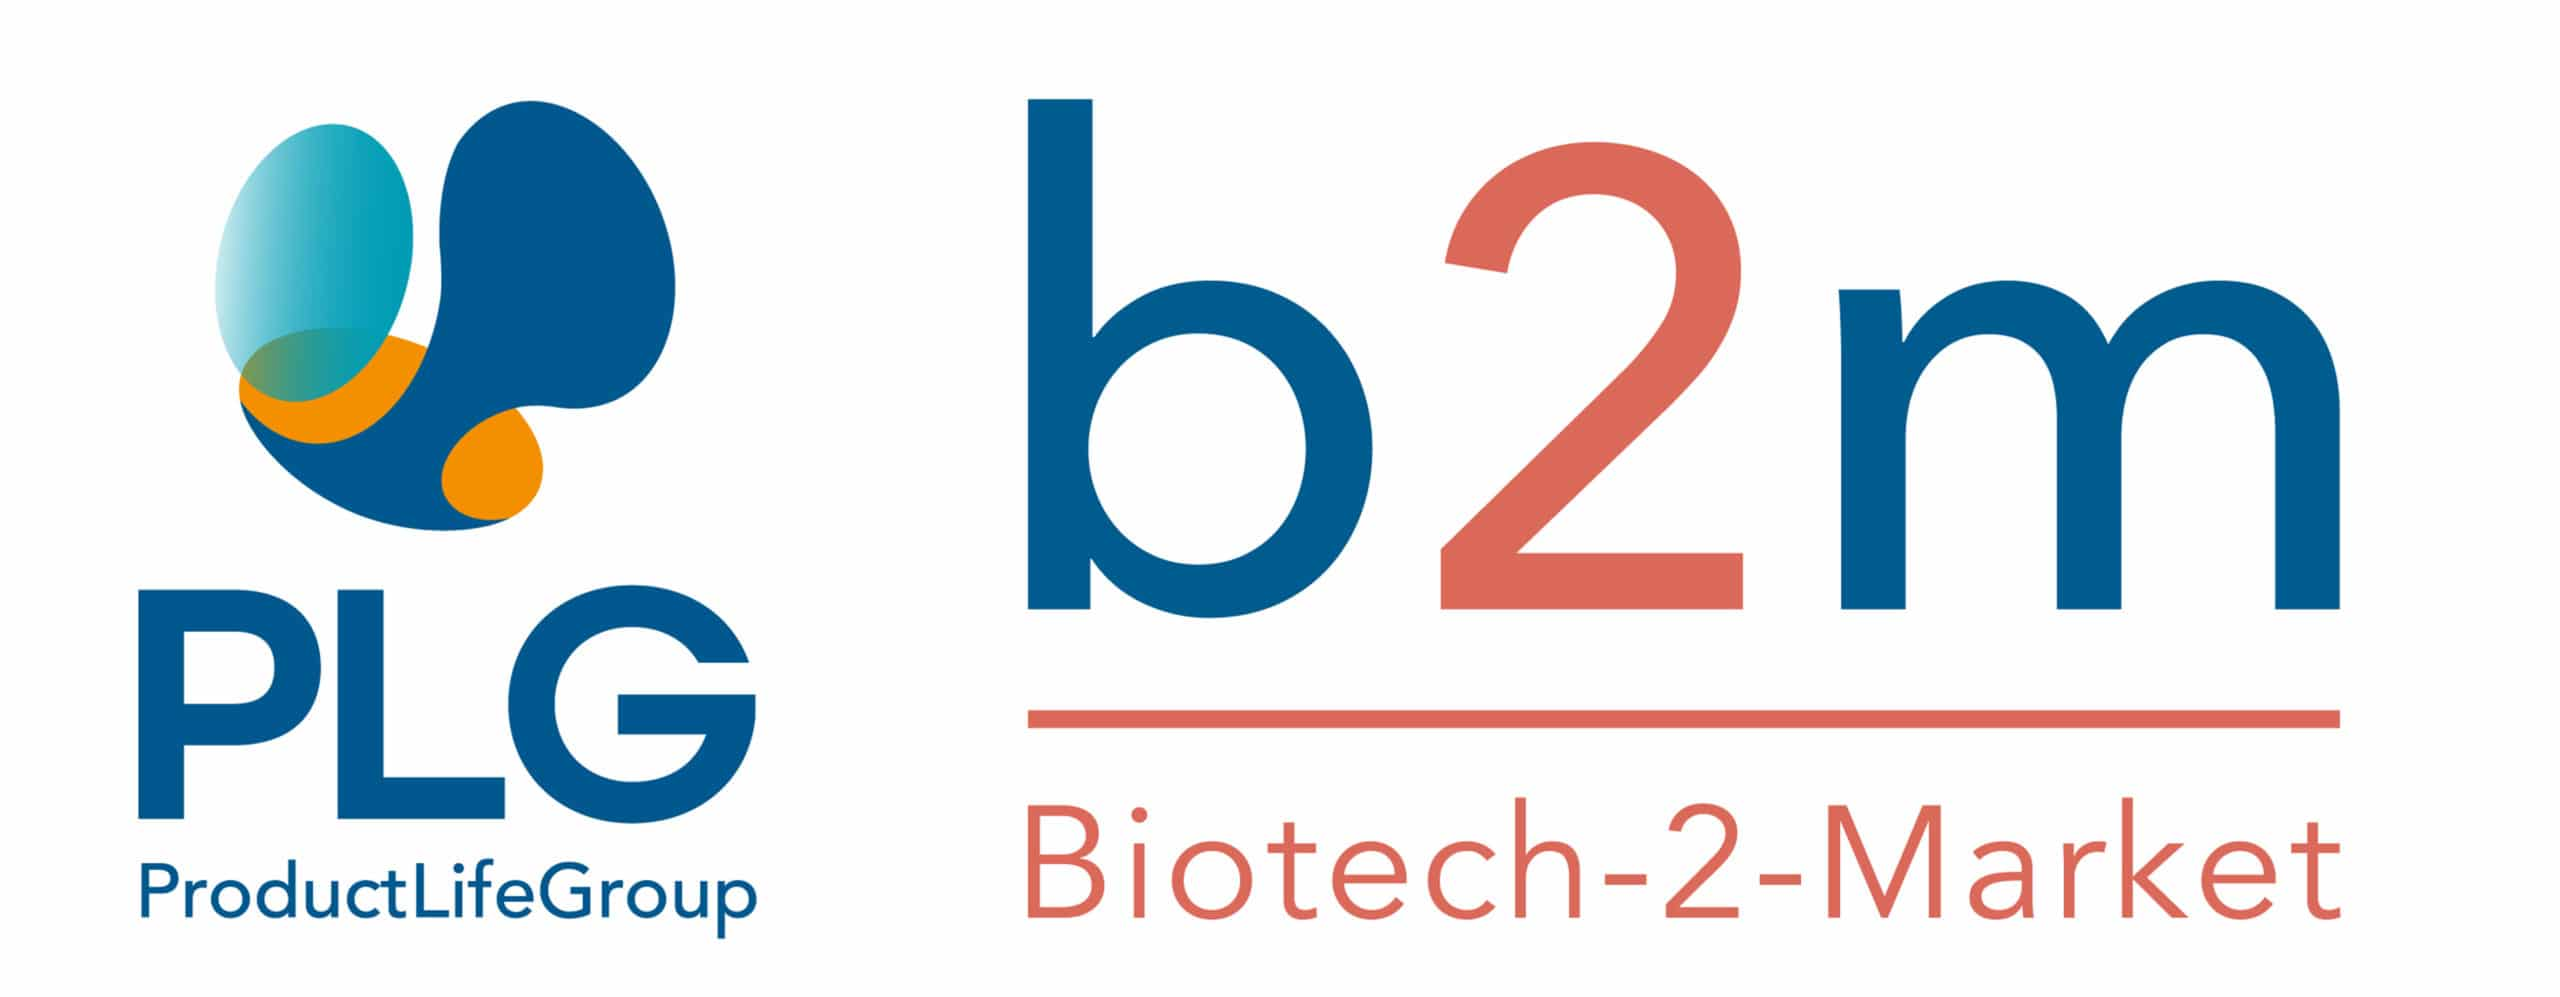 Why the synergy between biotech companies and PLG makes sense